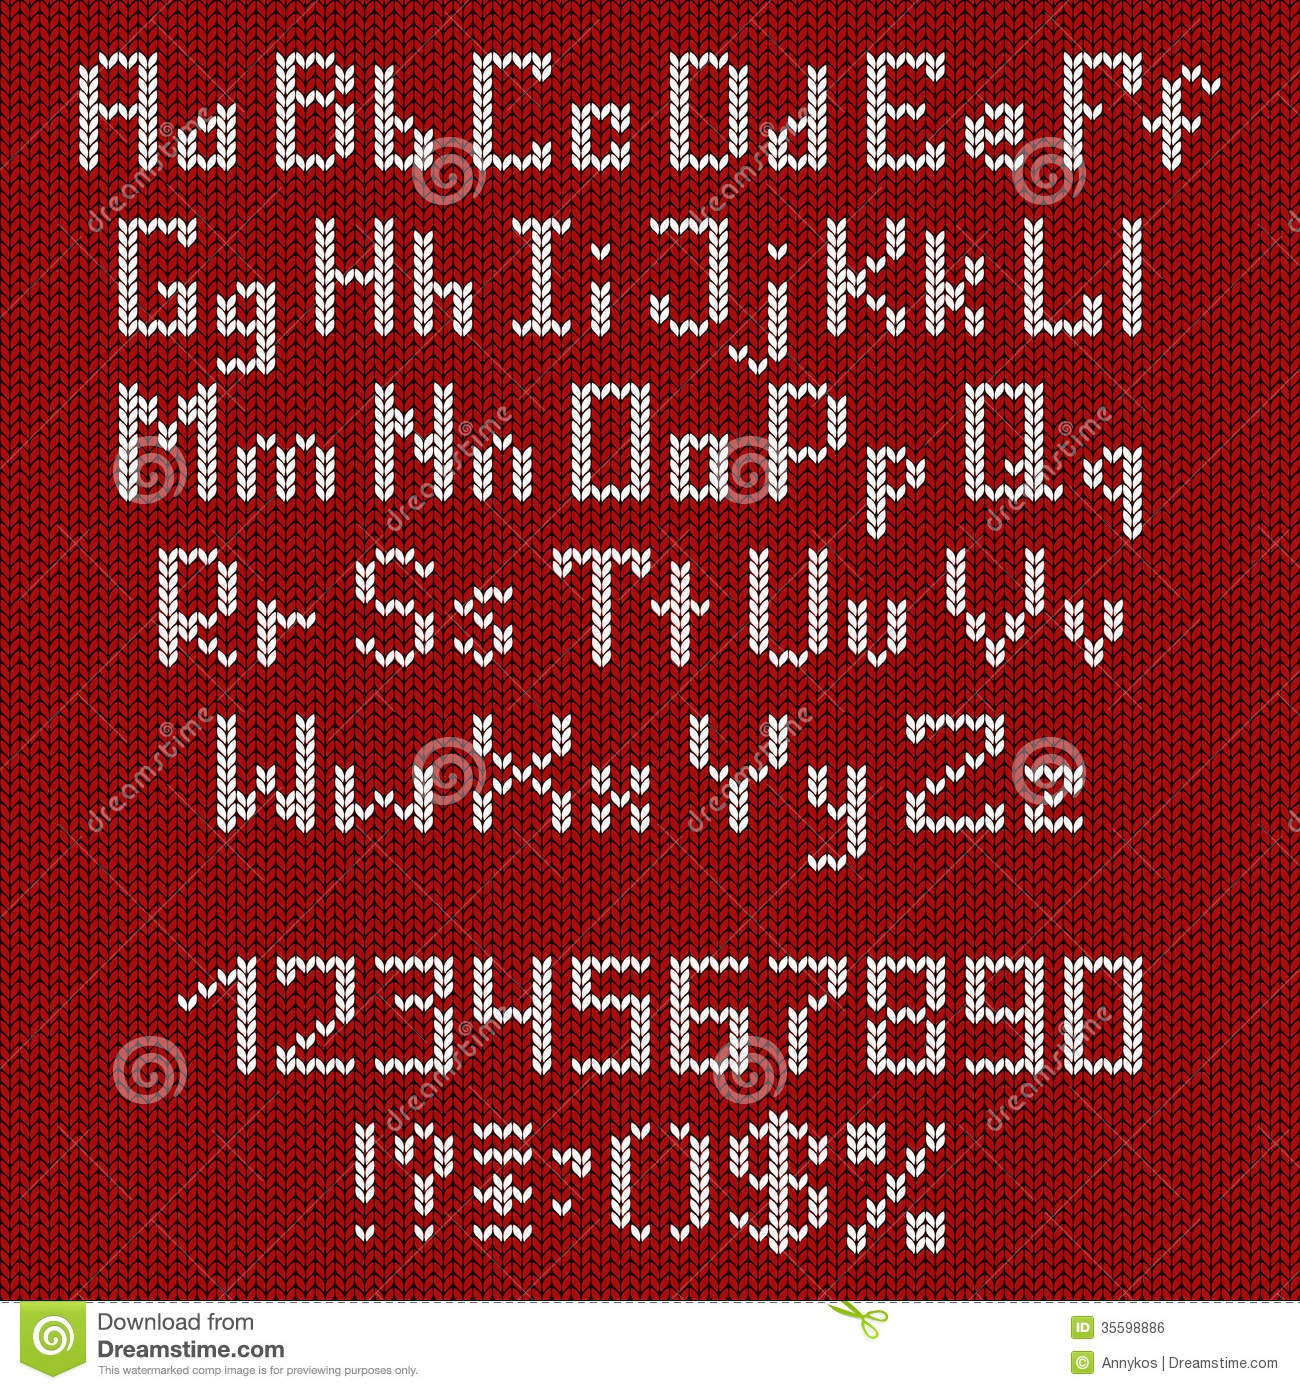 Set Of Knitted Alphabet And Numbers Stock Vector - Illustration of ...